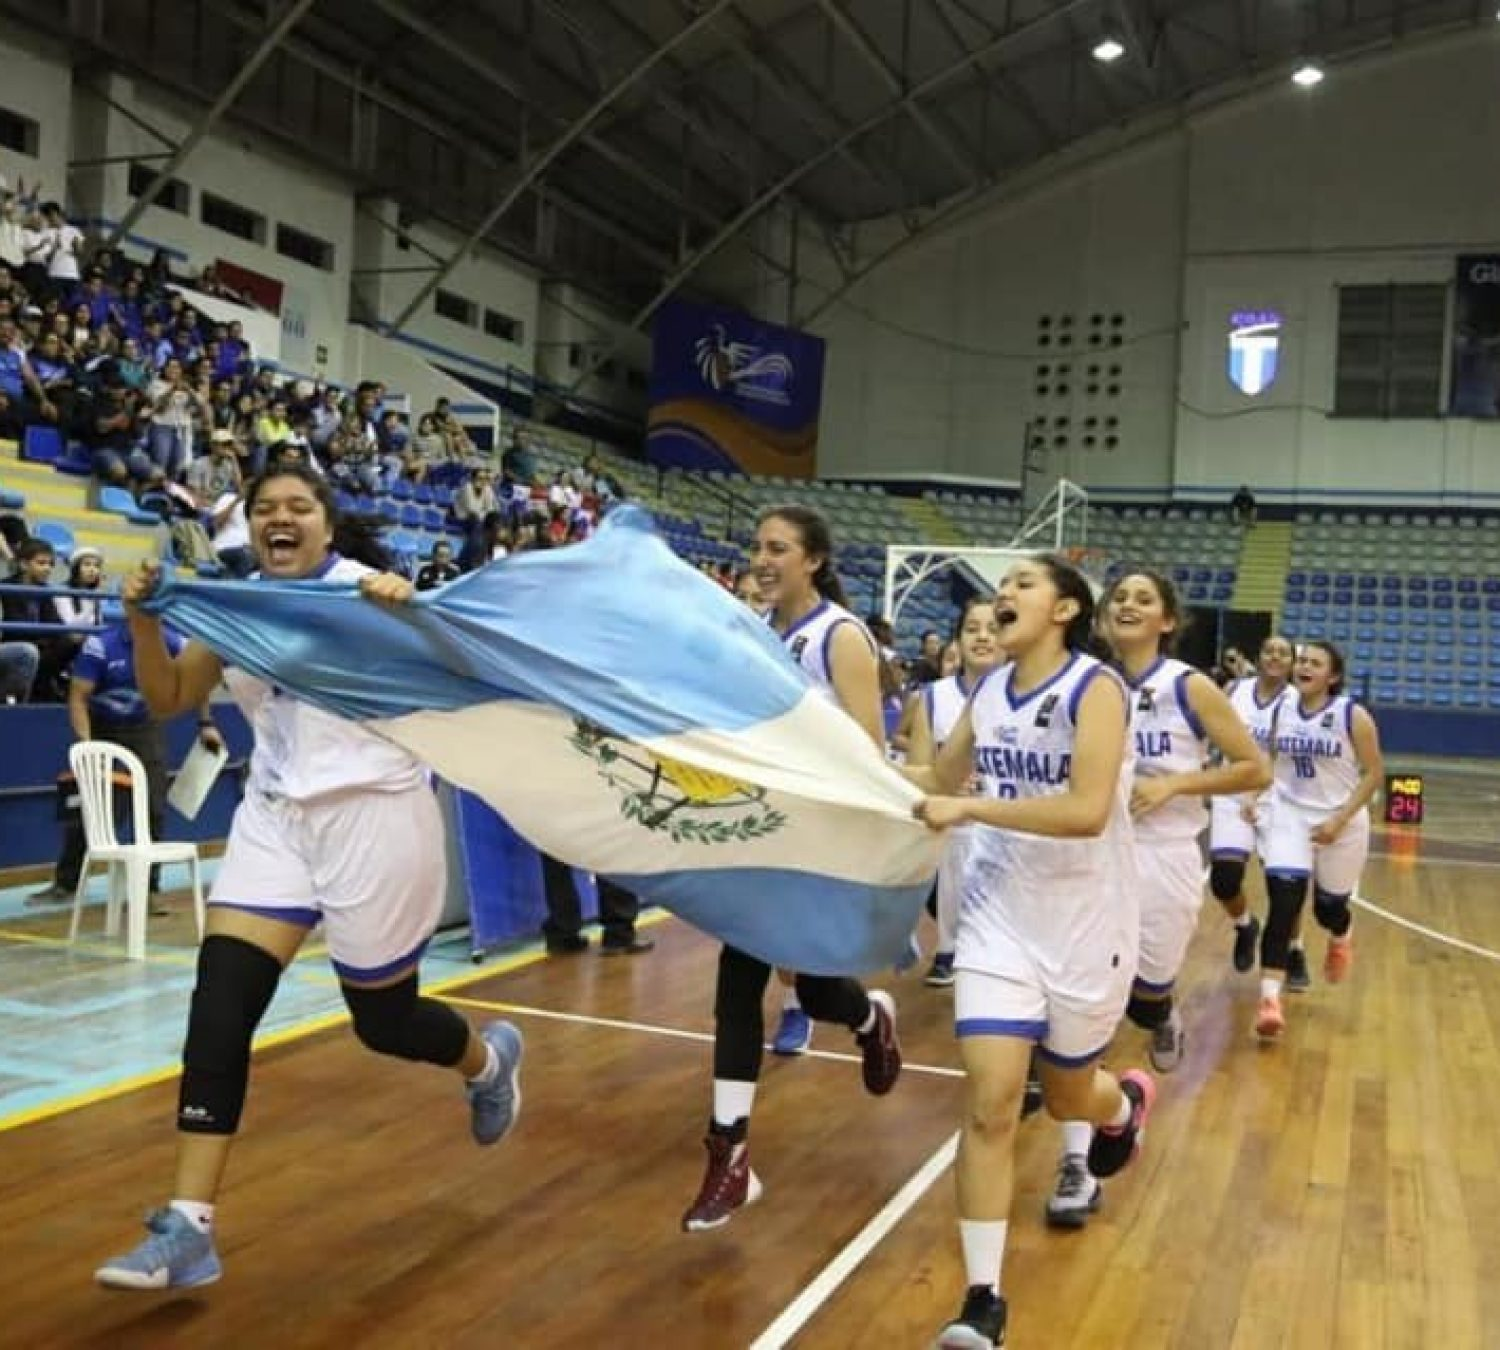 Guatemala wins the COCABA U16 Women's Championship at home!